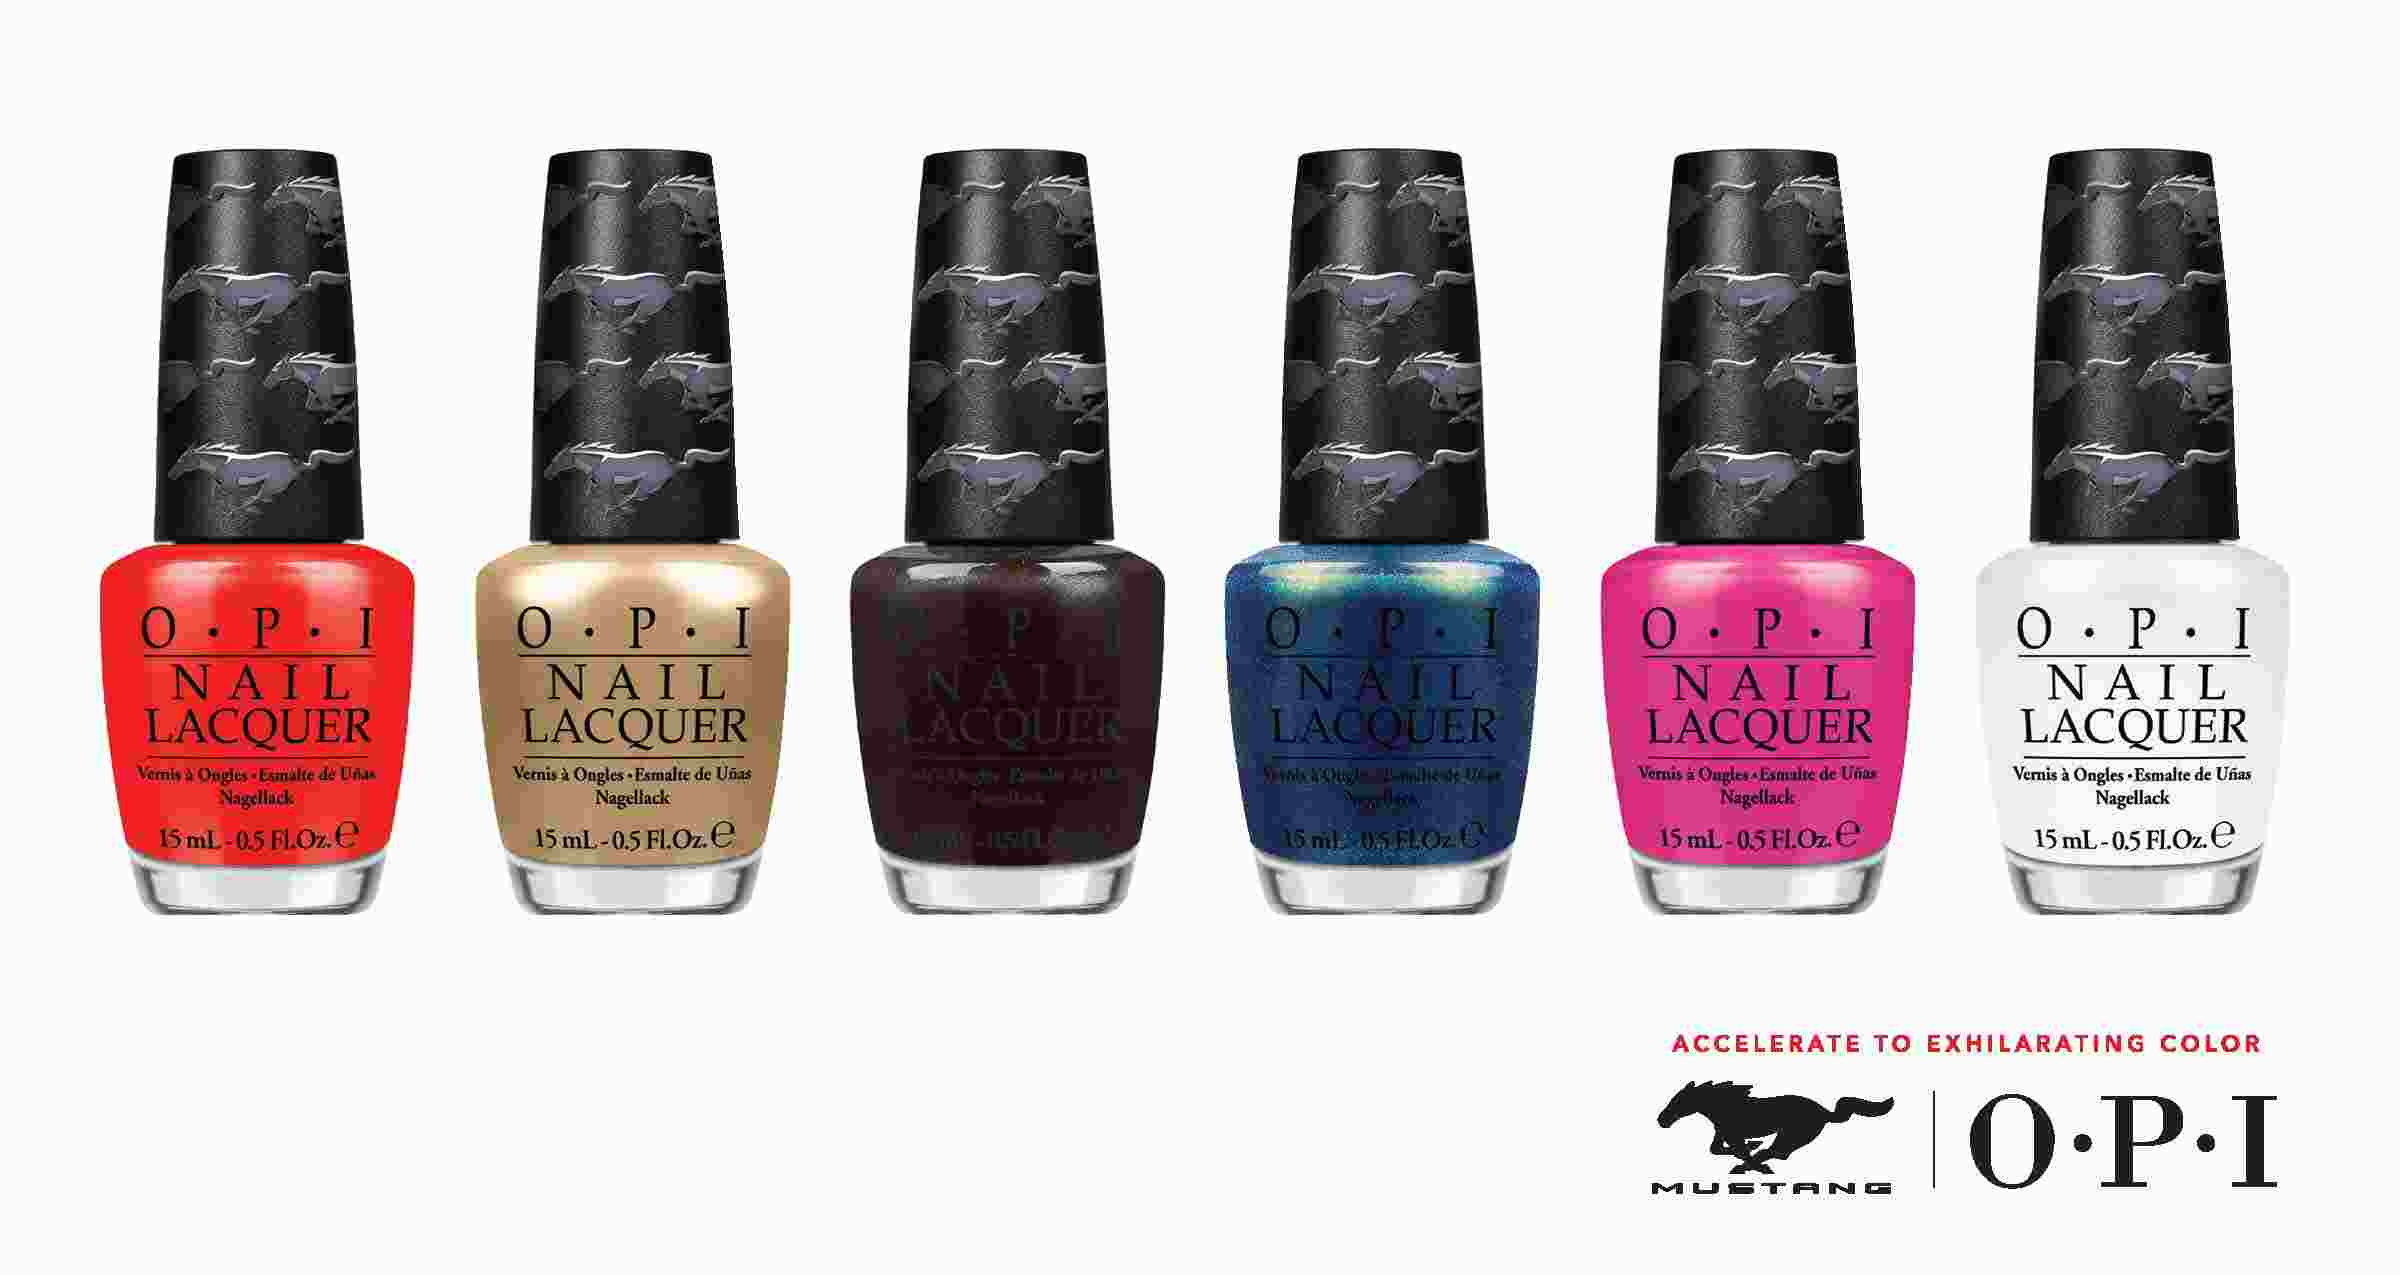 """OPI and Ford Motor Company are going full throttle and taking the """"pedi to the metal"""" with the official launch of the limited-edition nail lacquer collection inspired by the popular Ford Mustang. The OPI Ford Mustang collection features six Mustang-inspired shades that are set to hit U.S. stores in July."""